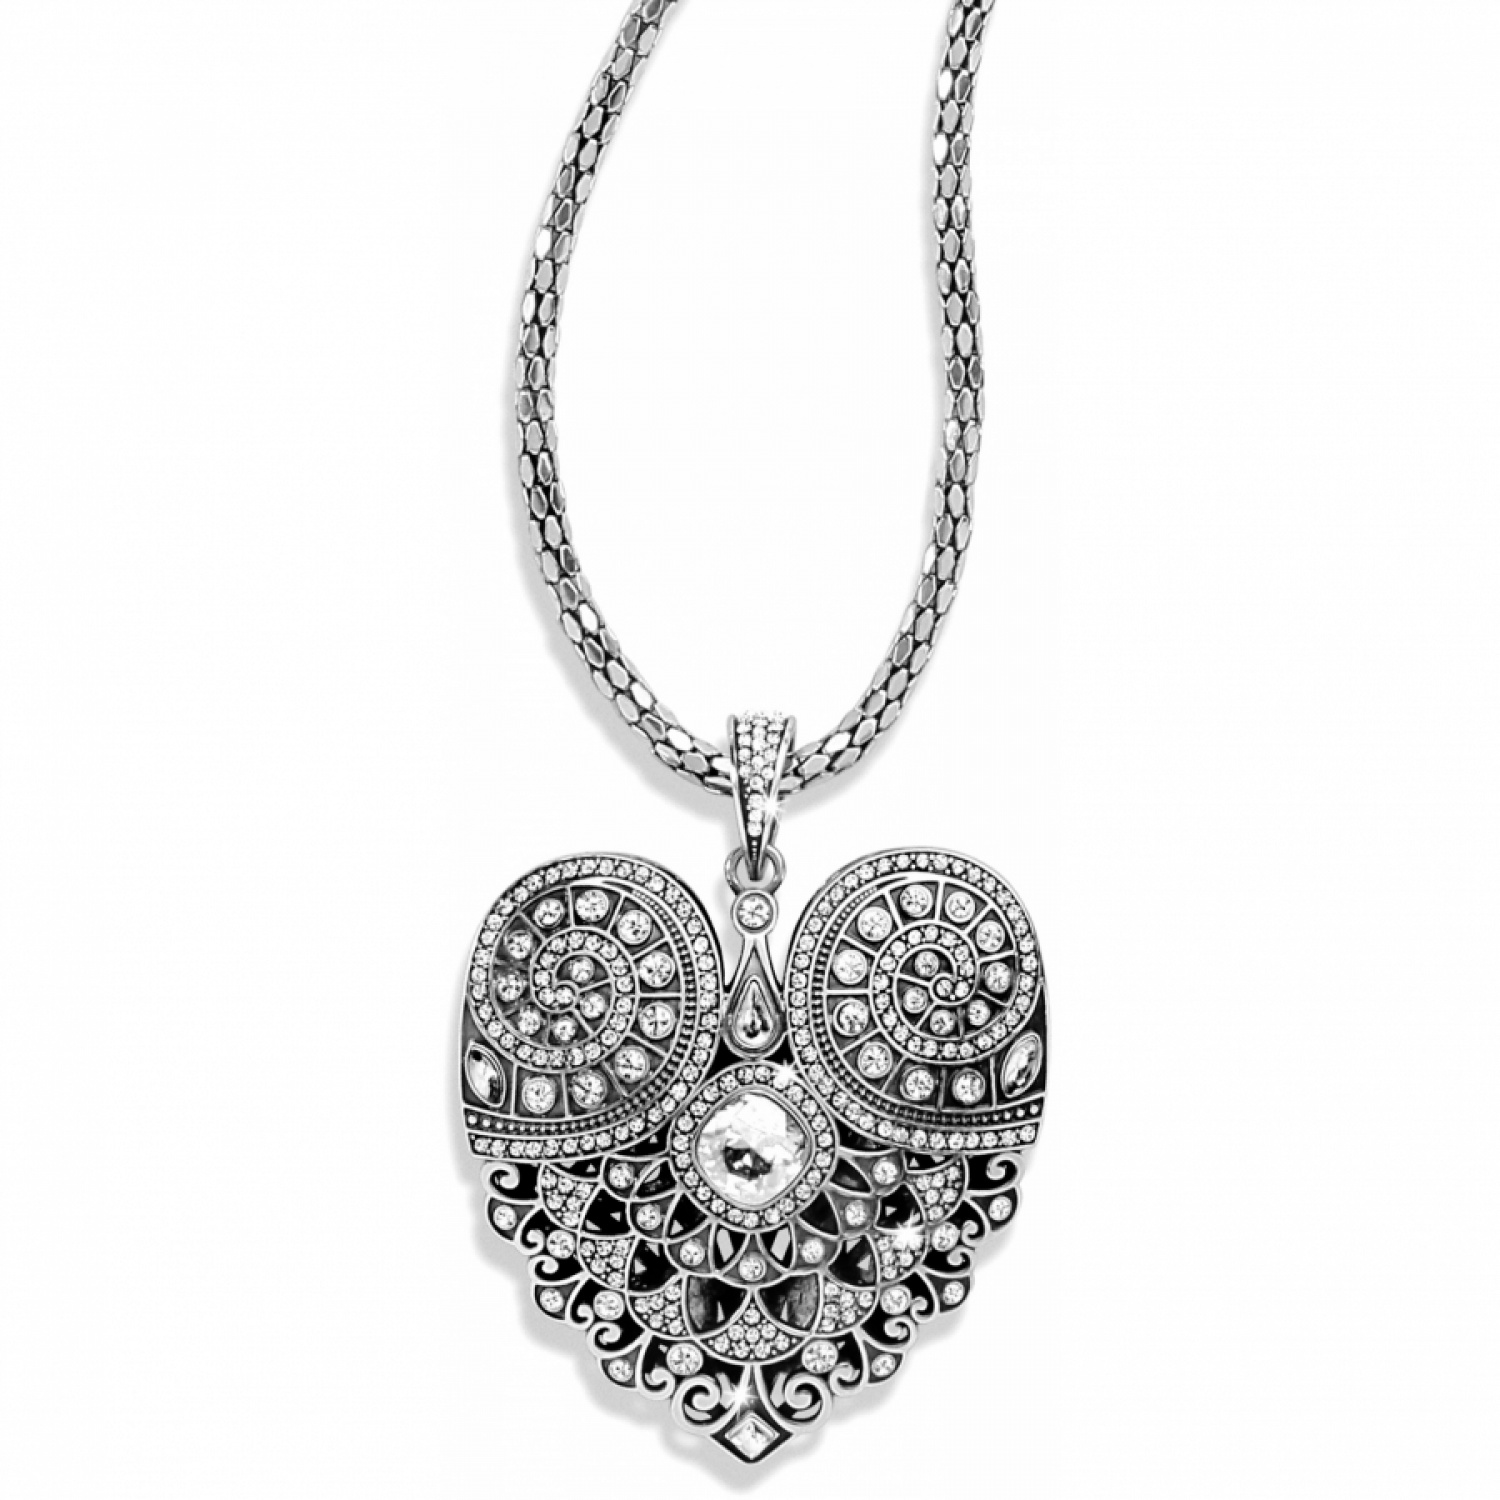 Crystal Heart Necklace...